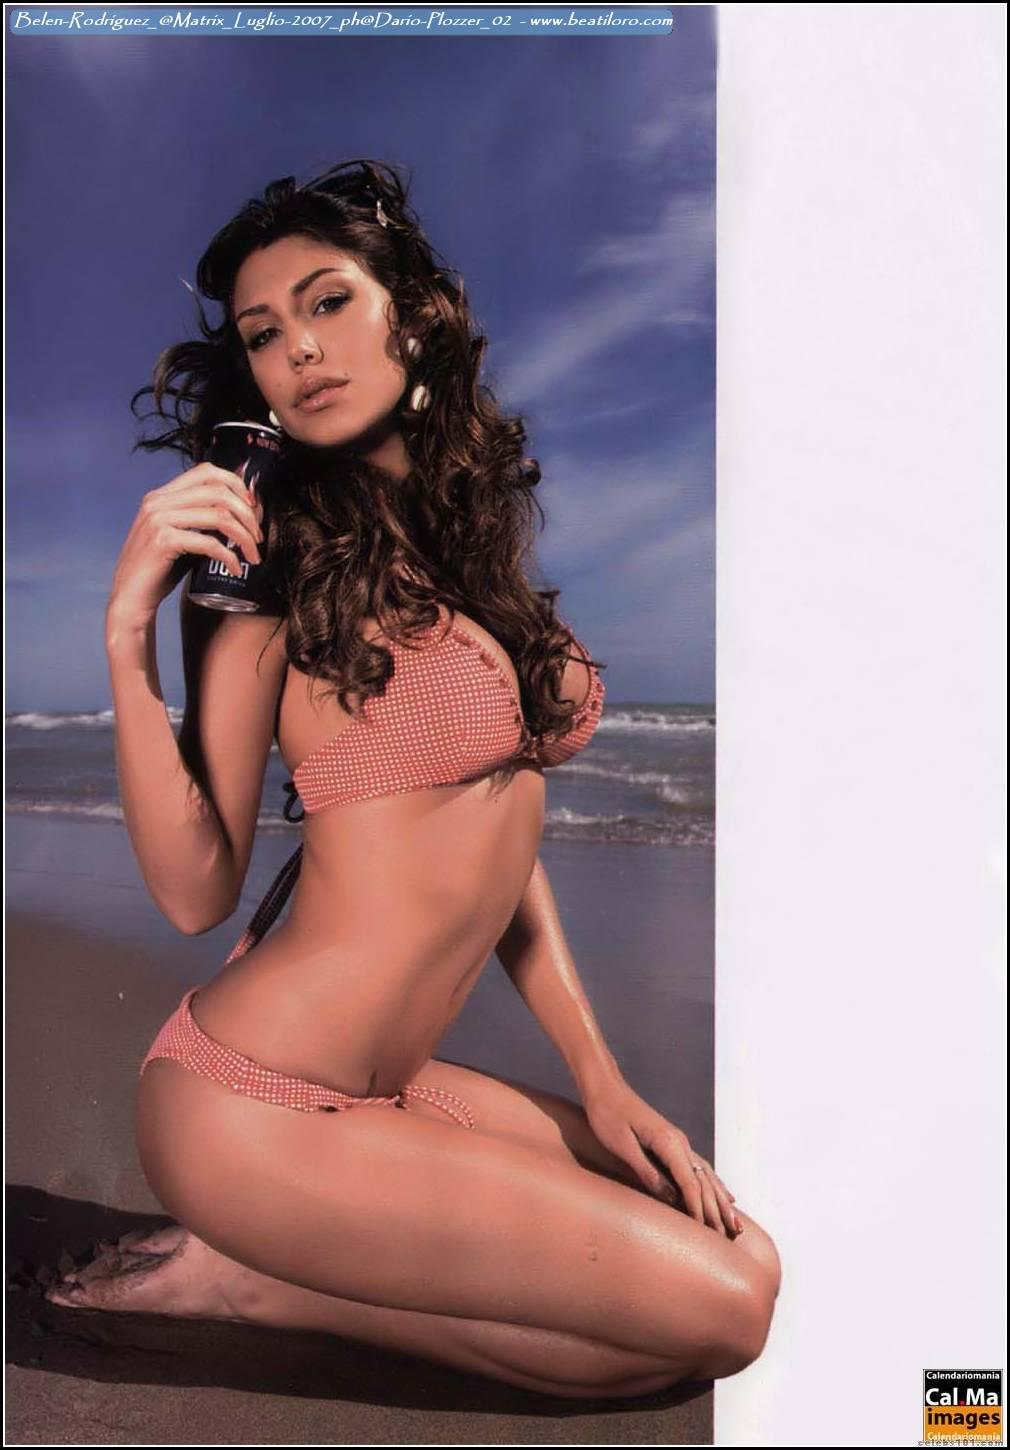 belen_rodriguezmatrix_magazine_july_2007_10